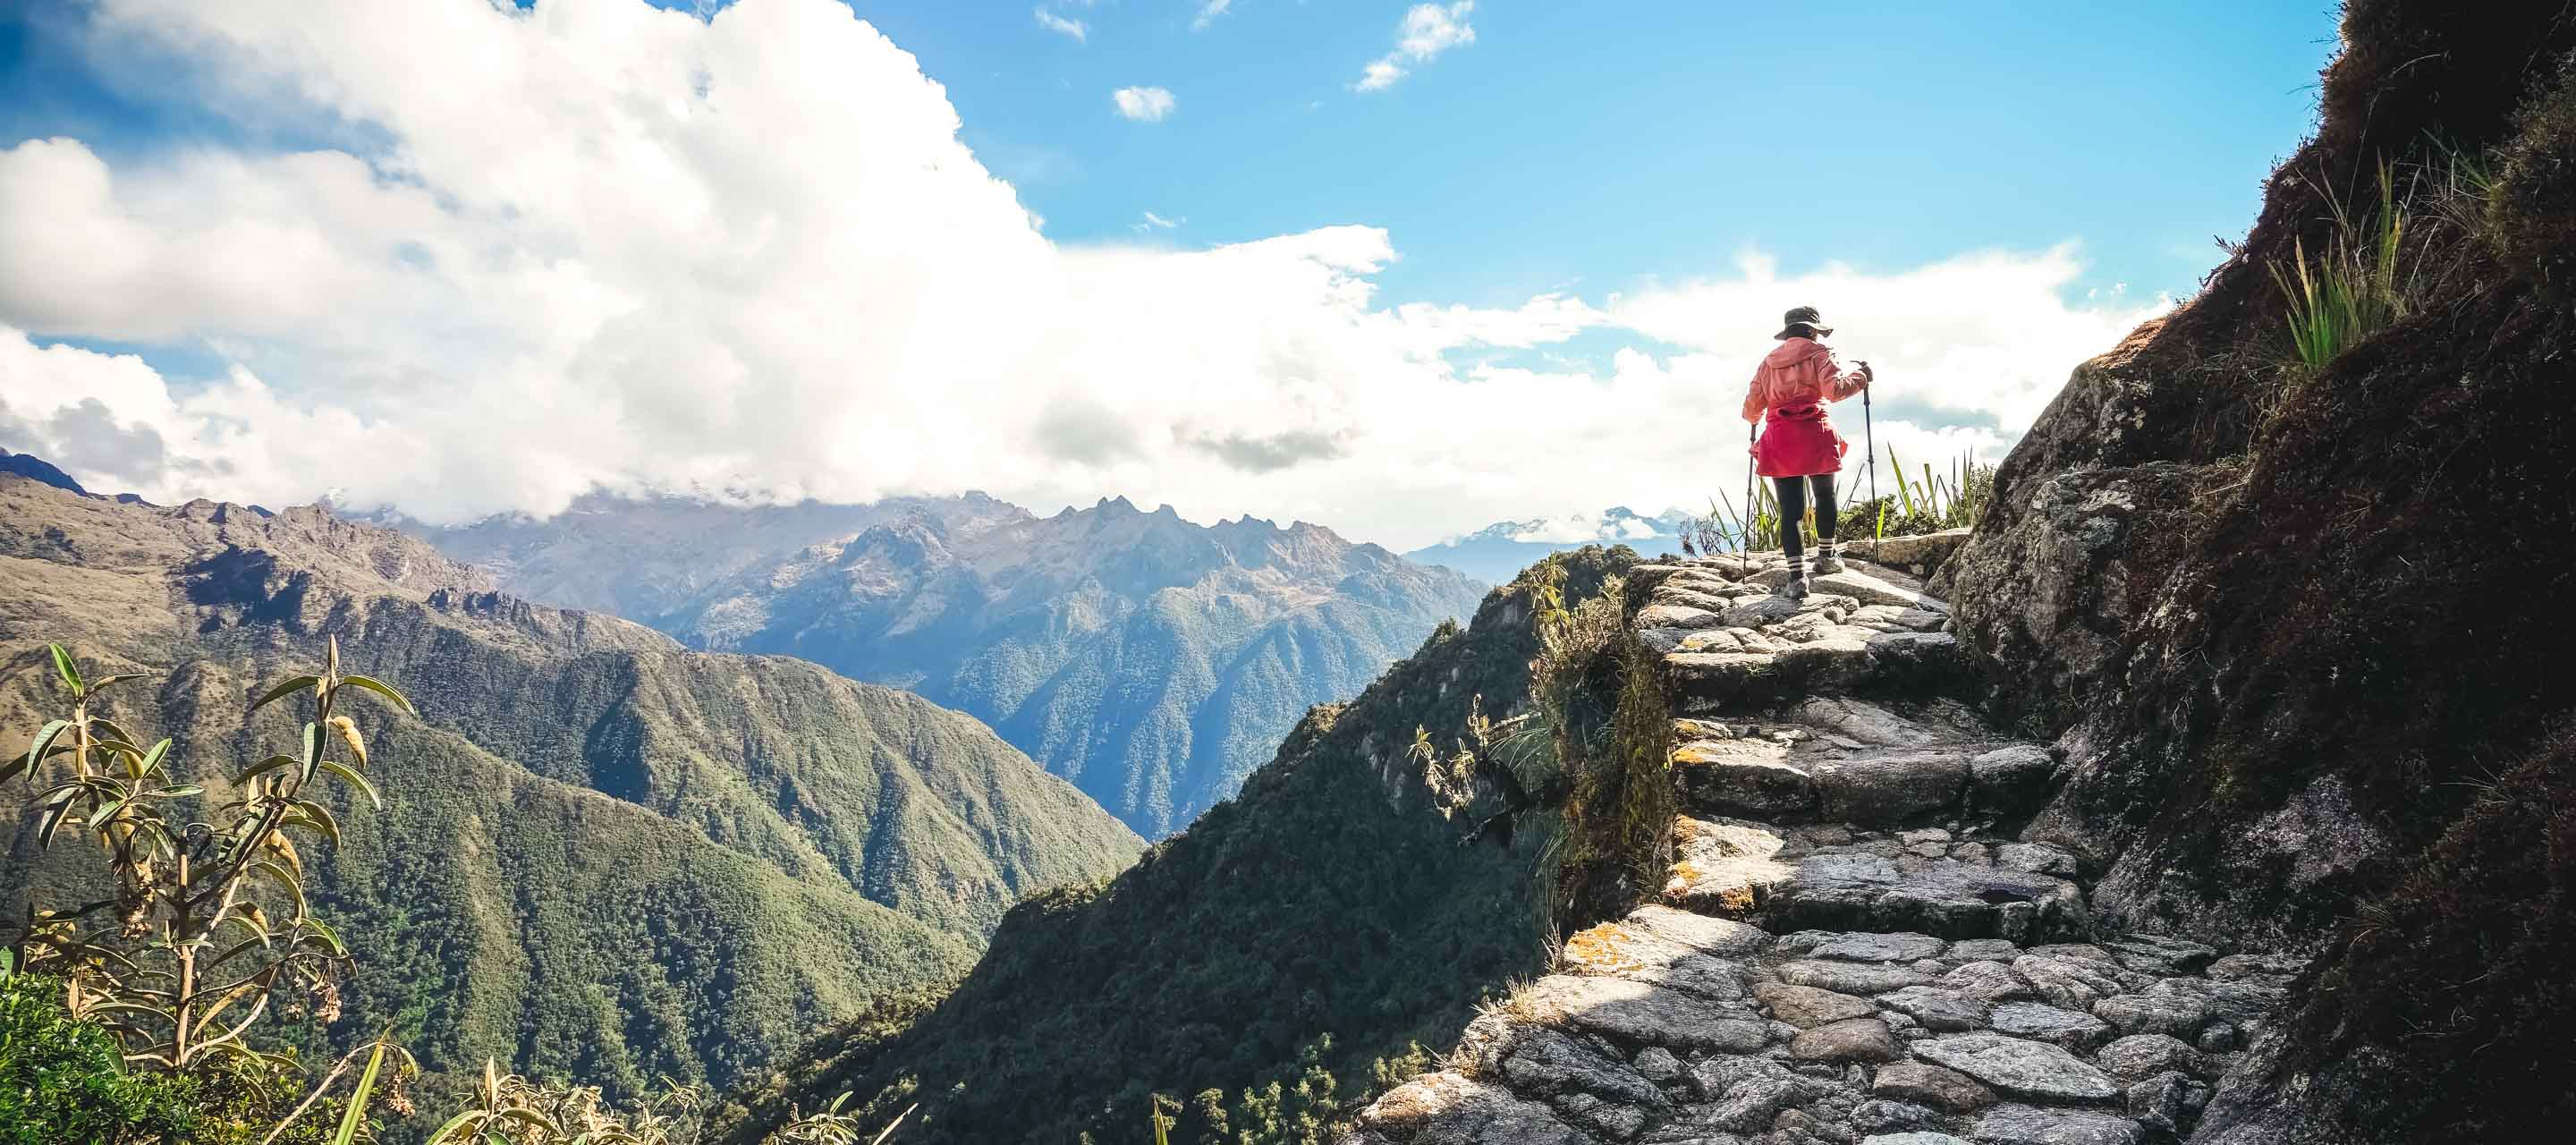 Person hiking cliffside section of Inca Trail